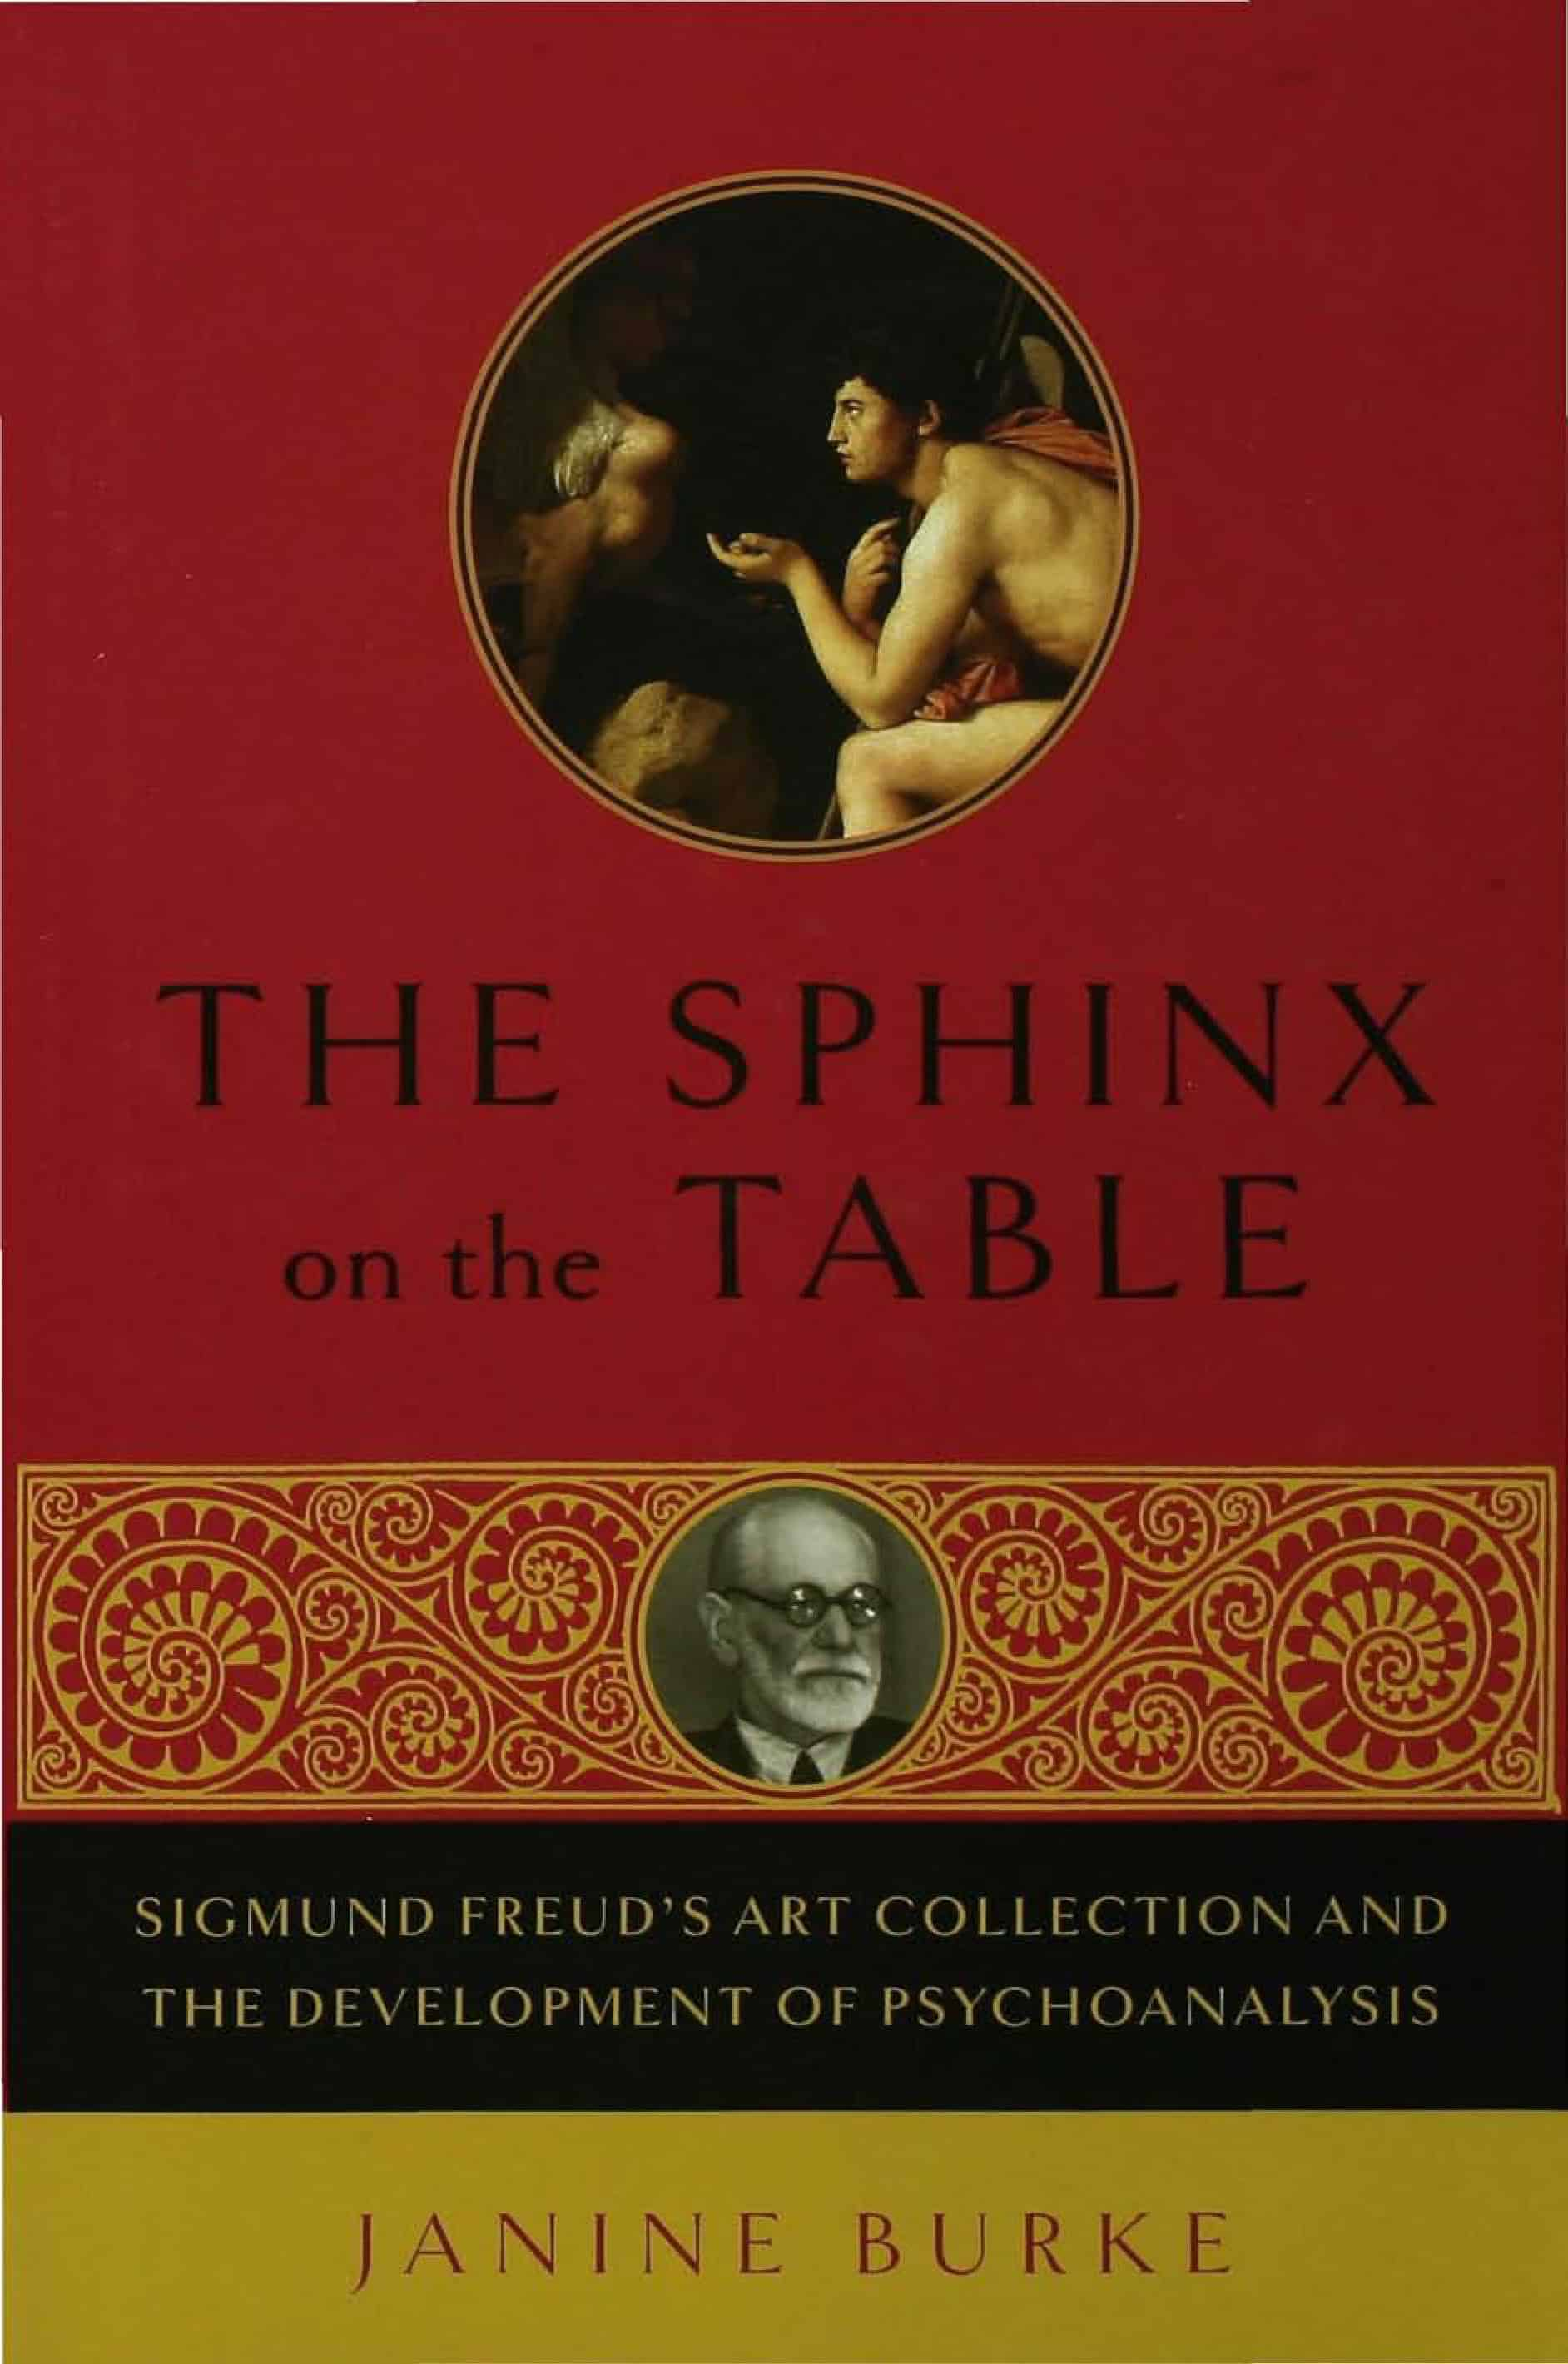 The Sphinx on the Table Sigmund Freud's Art Collection and the Development of Psychoanalysis - The Sphinx on the Table: Sigmund Freud's Art Collection and the Development of Psychoanalysis